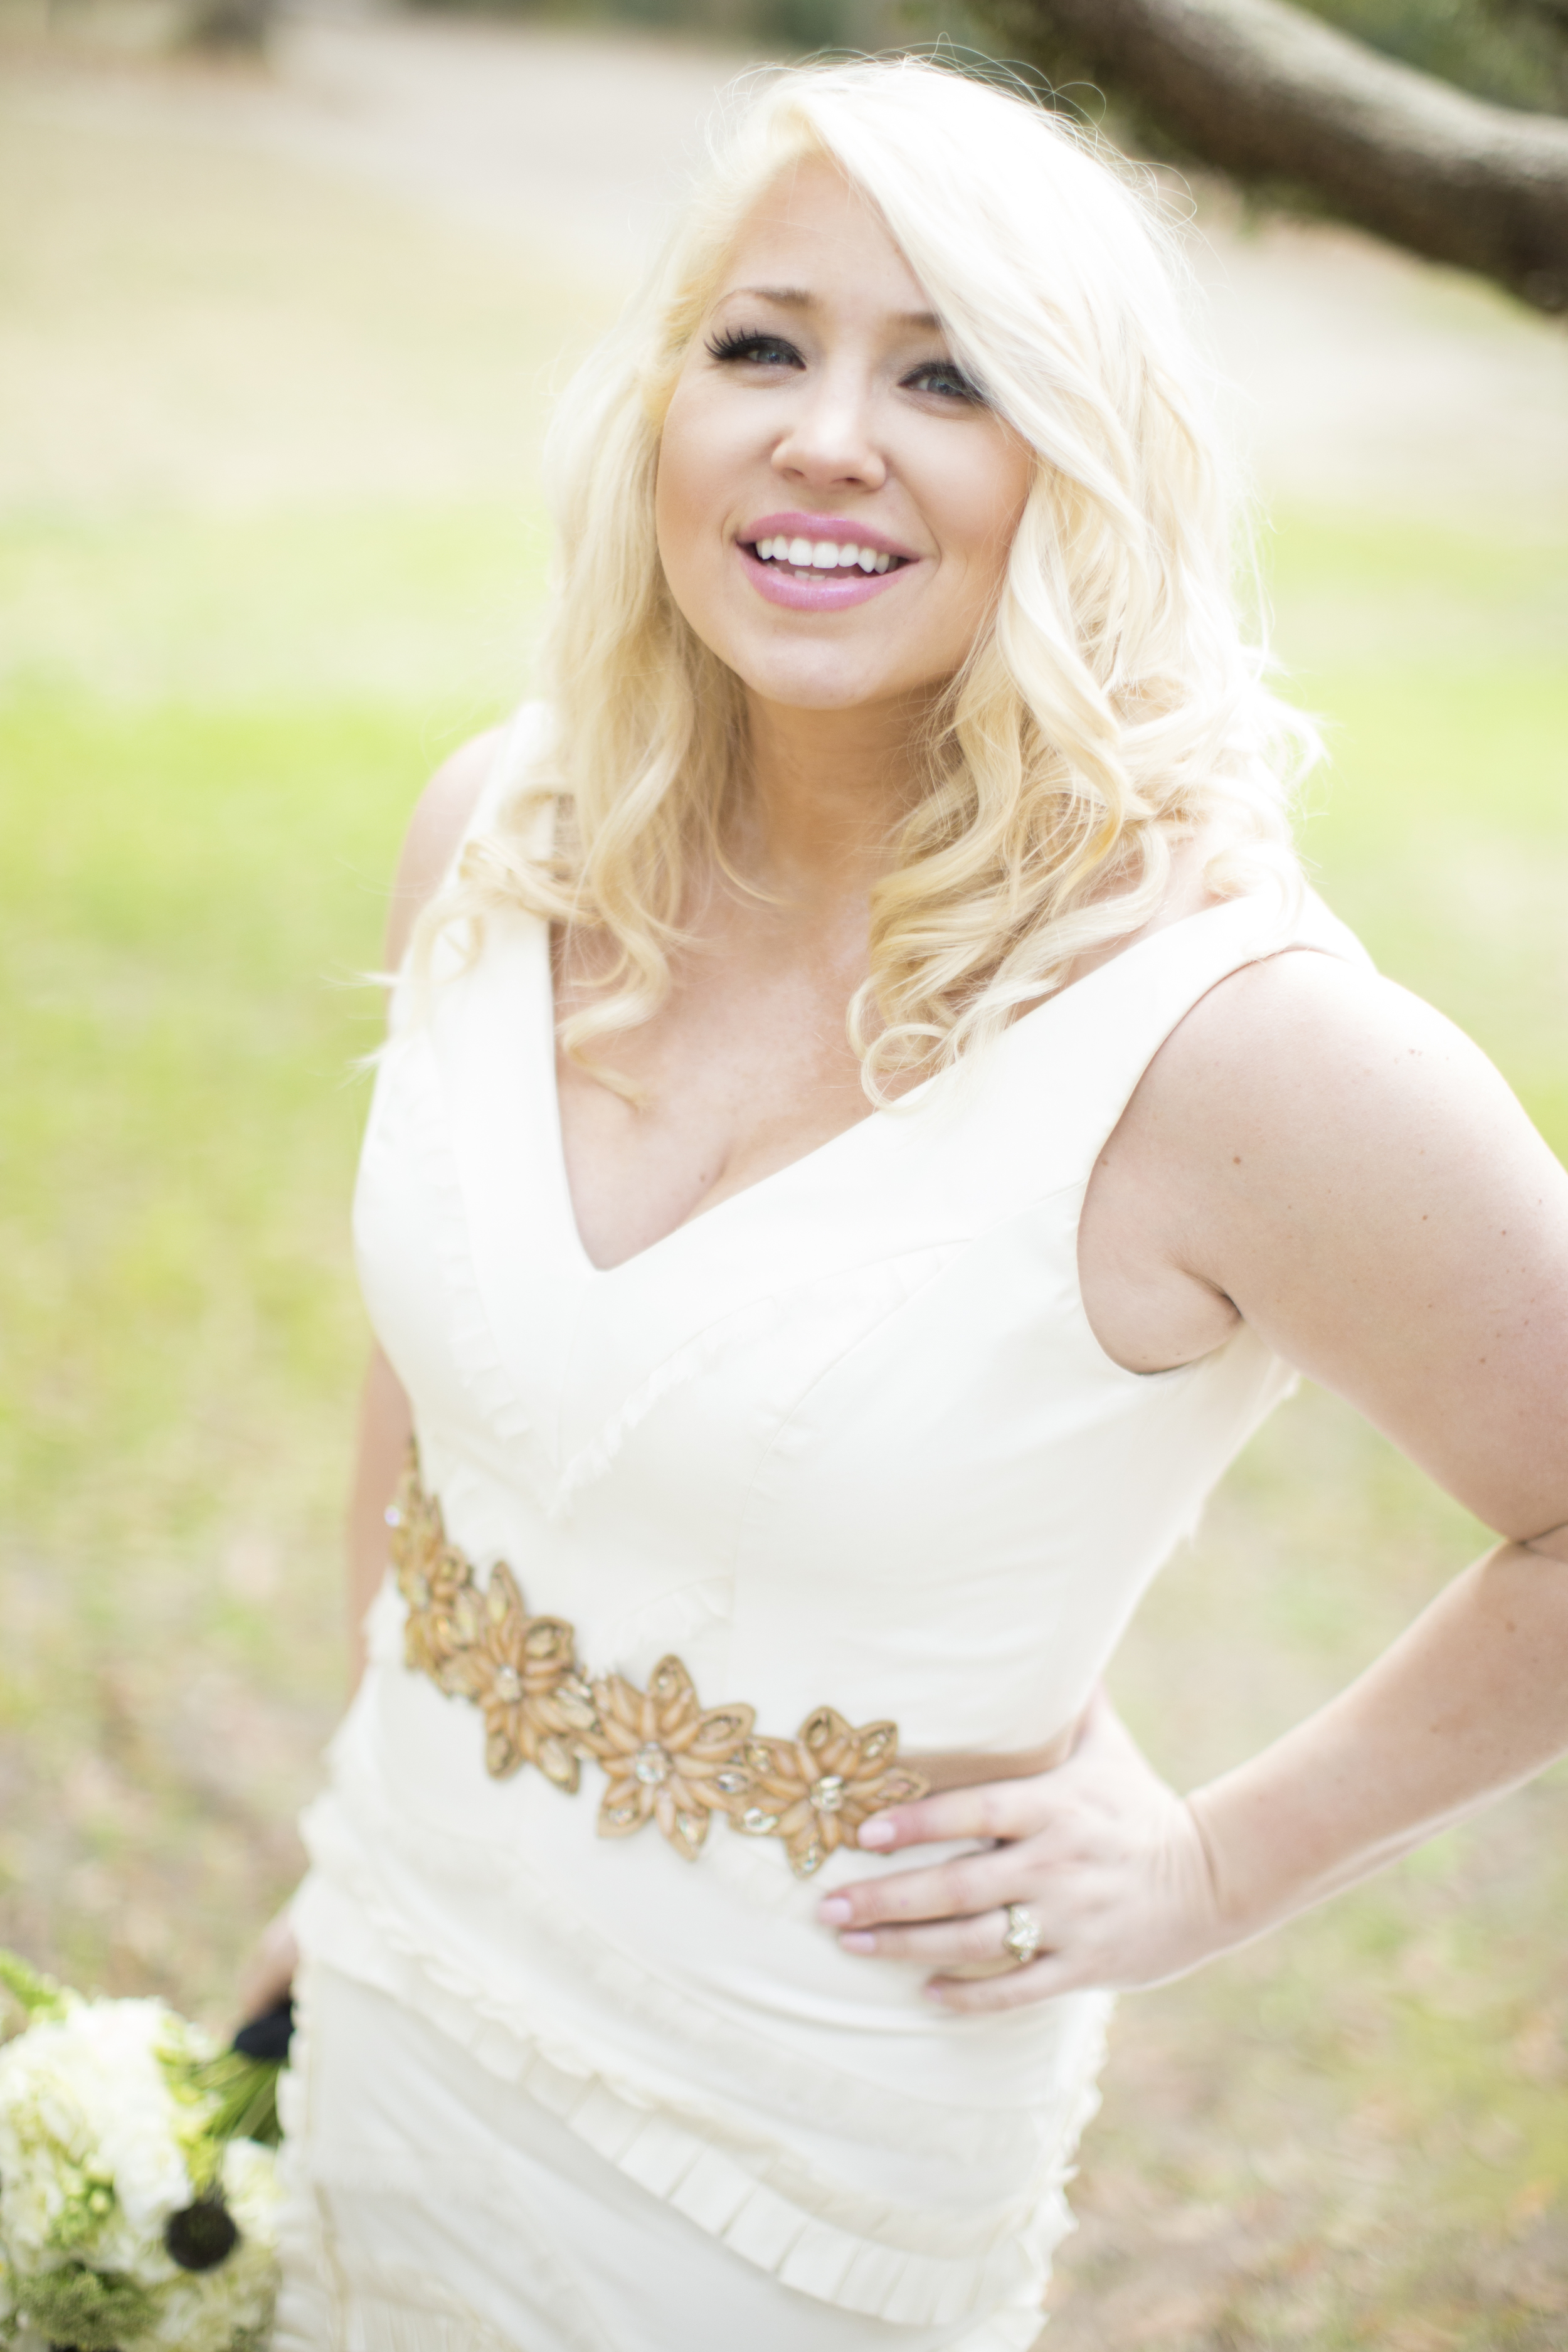 Meghan Walker of Pink Dot Beauty Bar at her bridal portraits